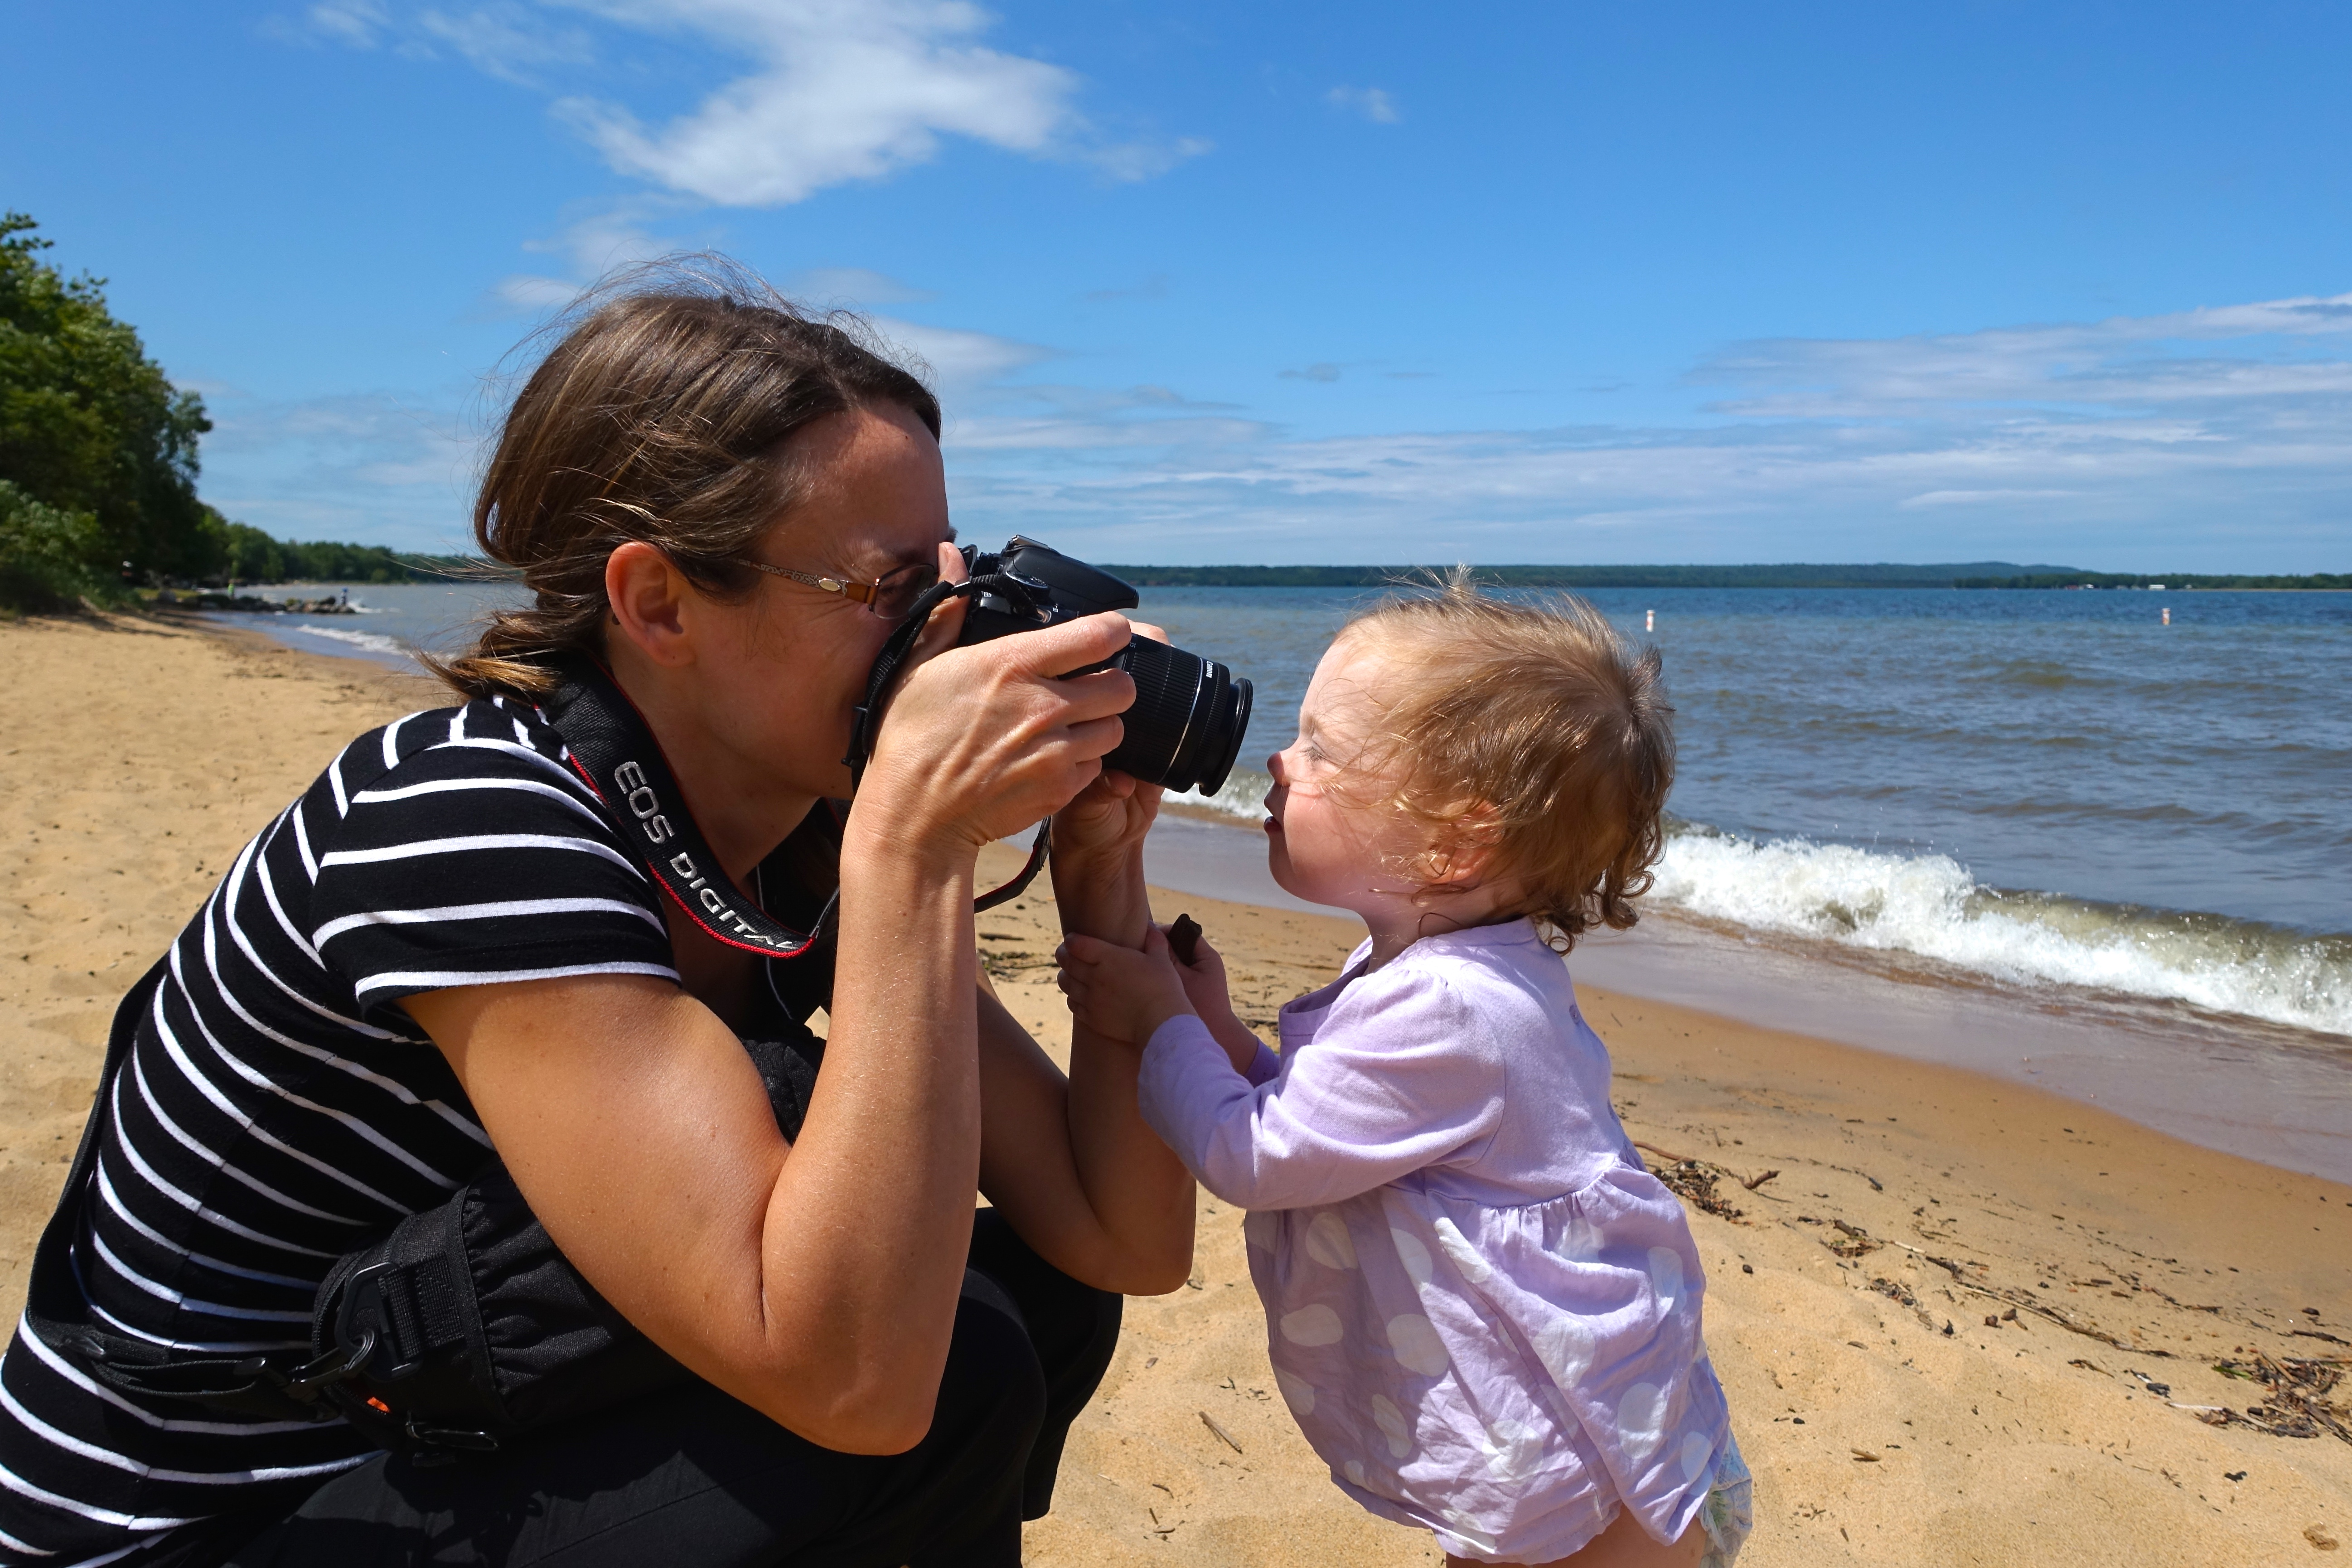 Mother and Baby with camera